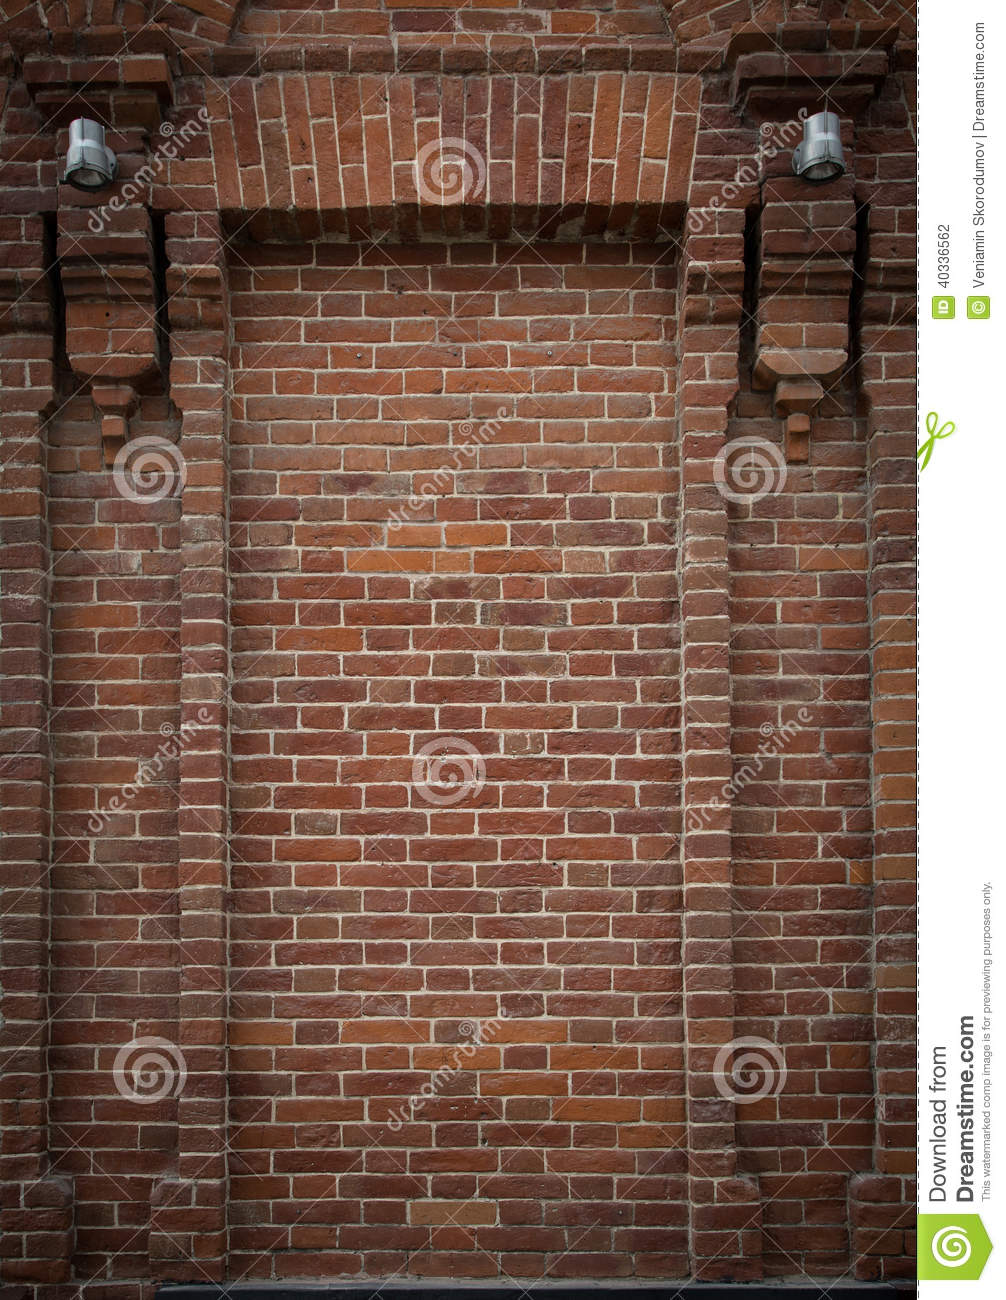 Brick Alcove Niche With Half Columns On Each Side And Two